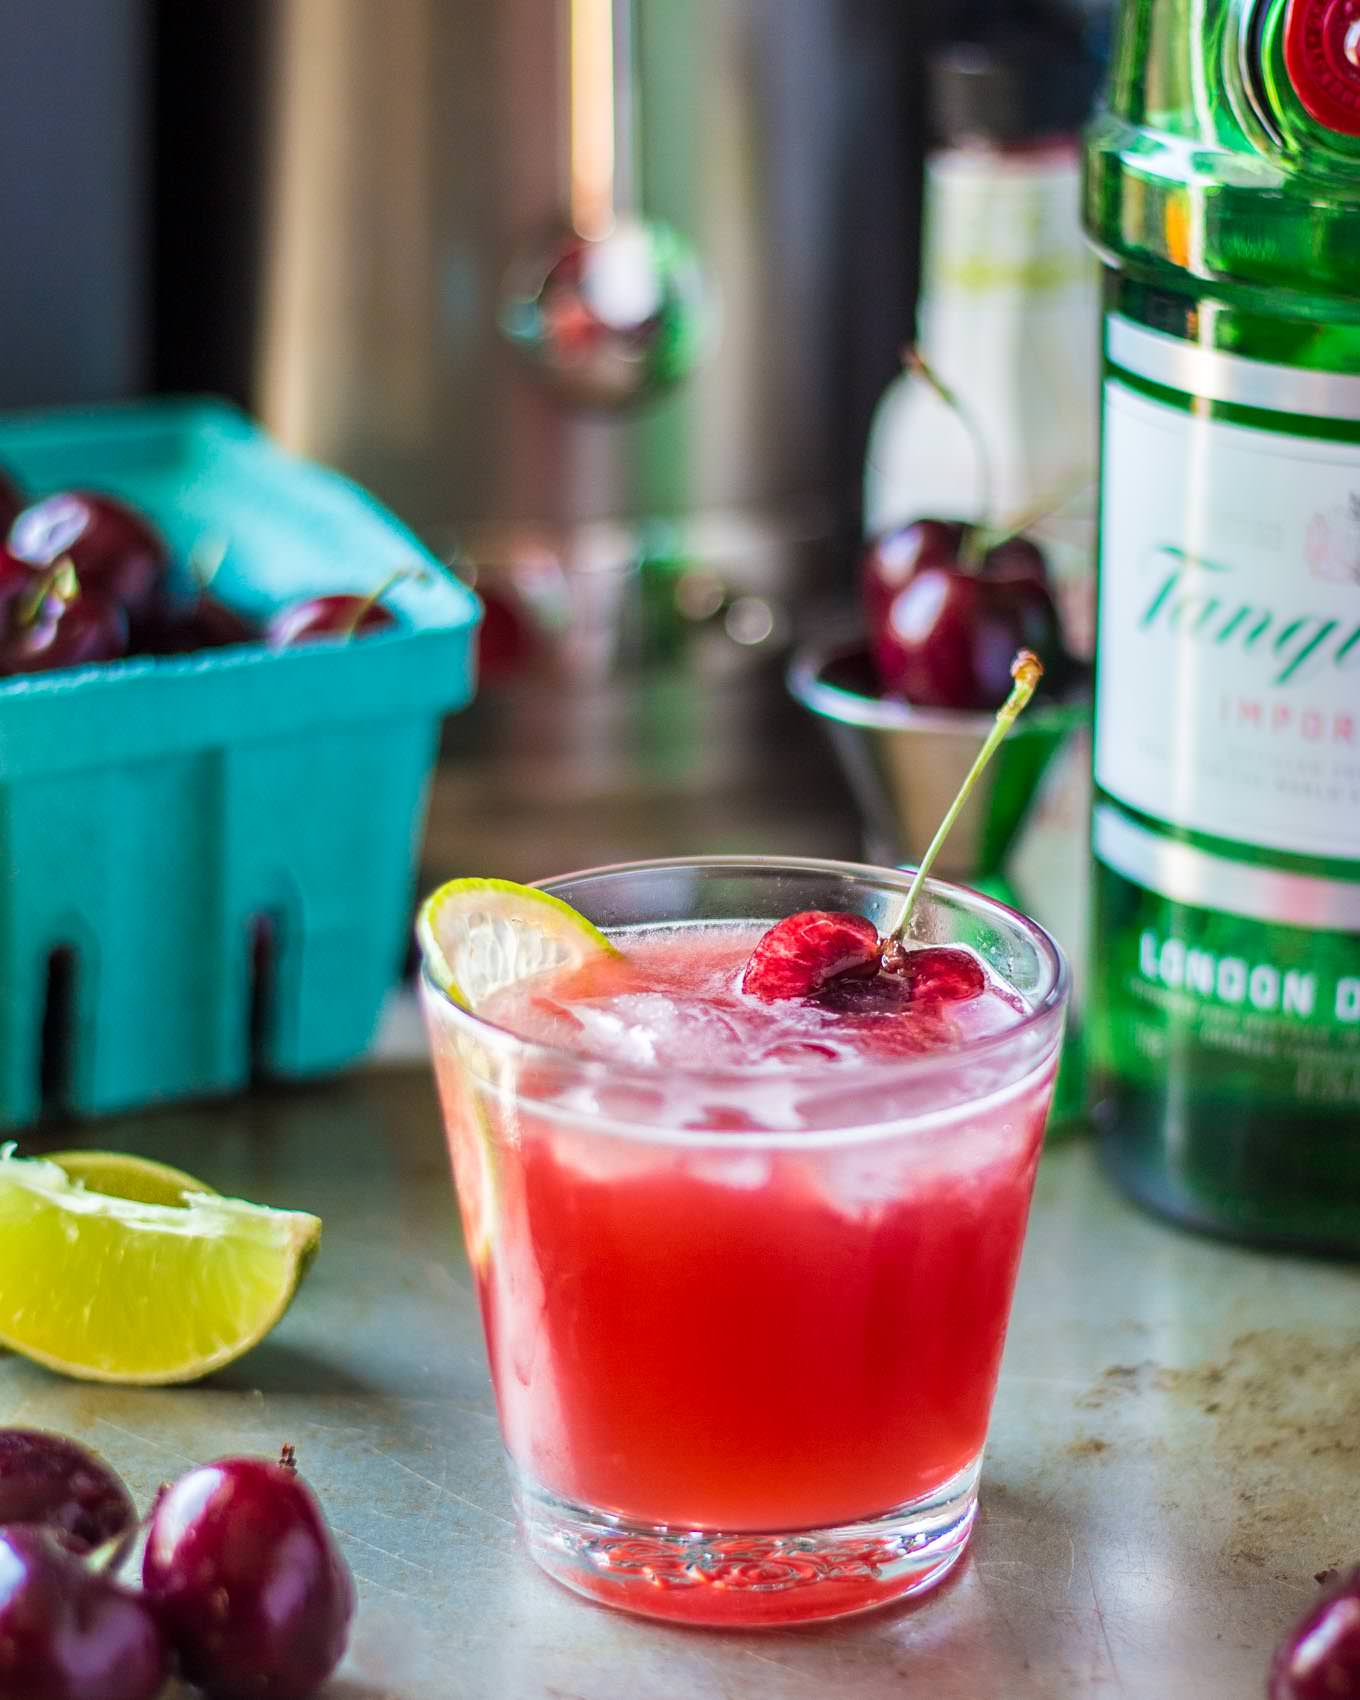 Drink With Gin: Loaded Cherry Gin Fizz